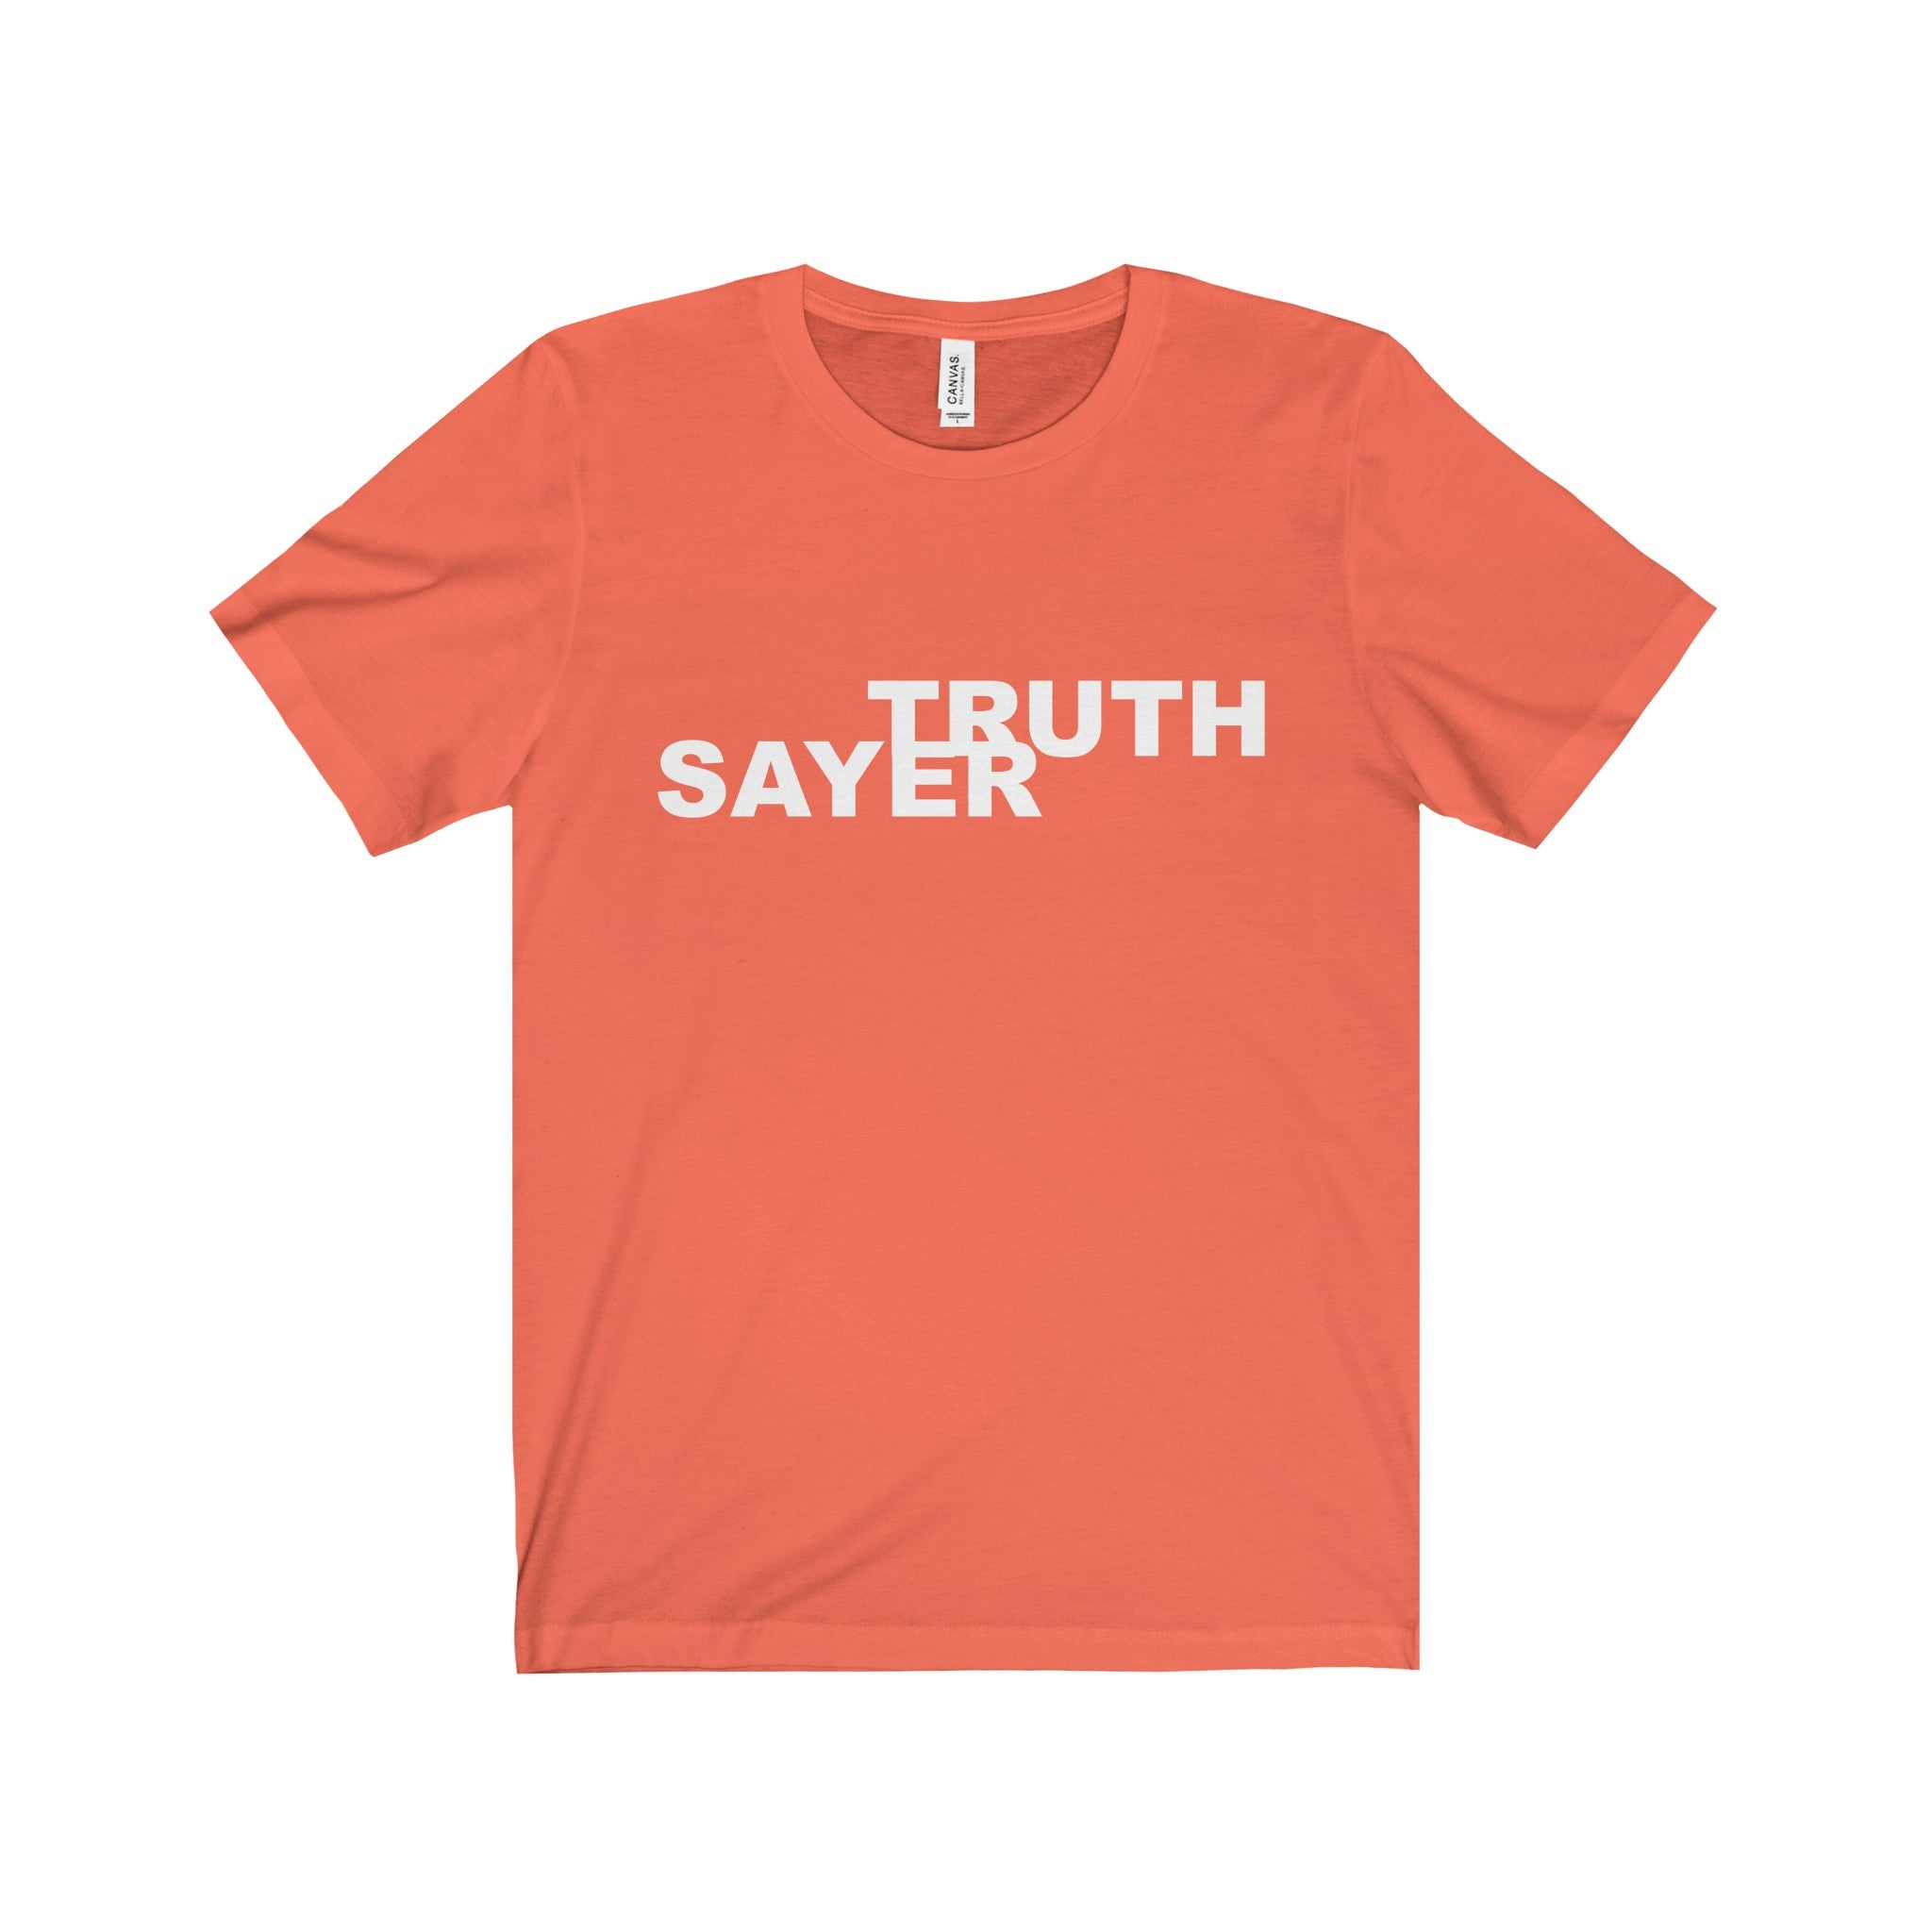 TRUTH SAYER White Letter Tee (6 colors available)